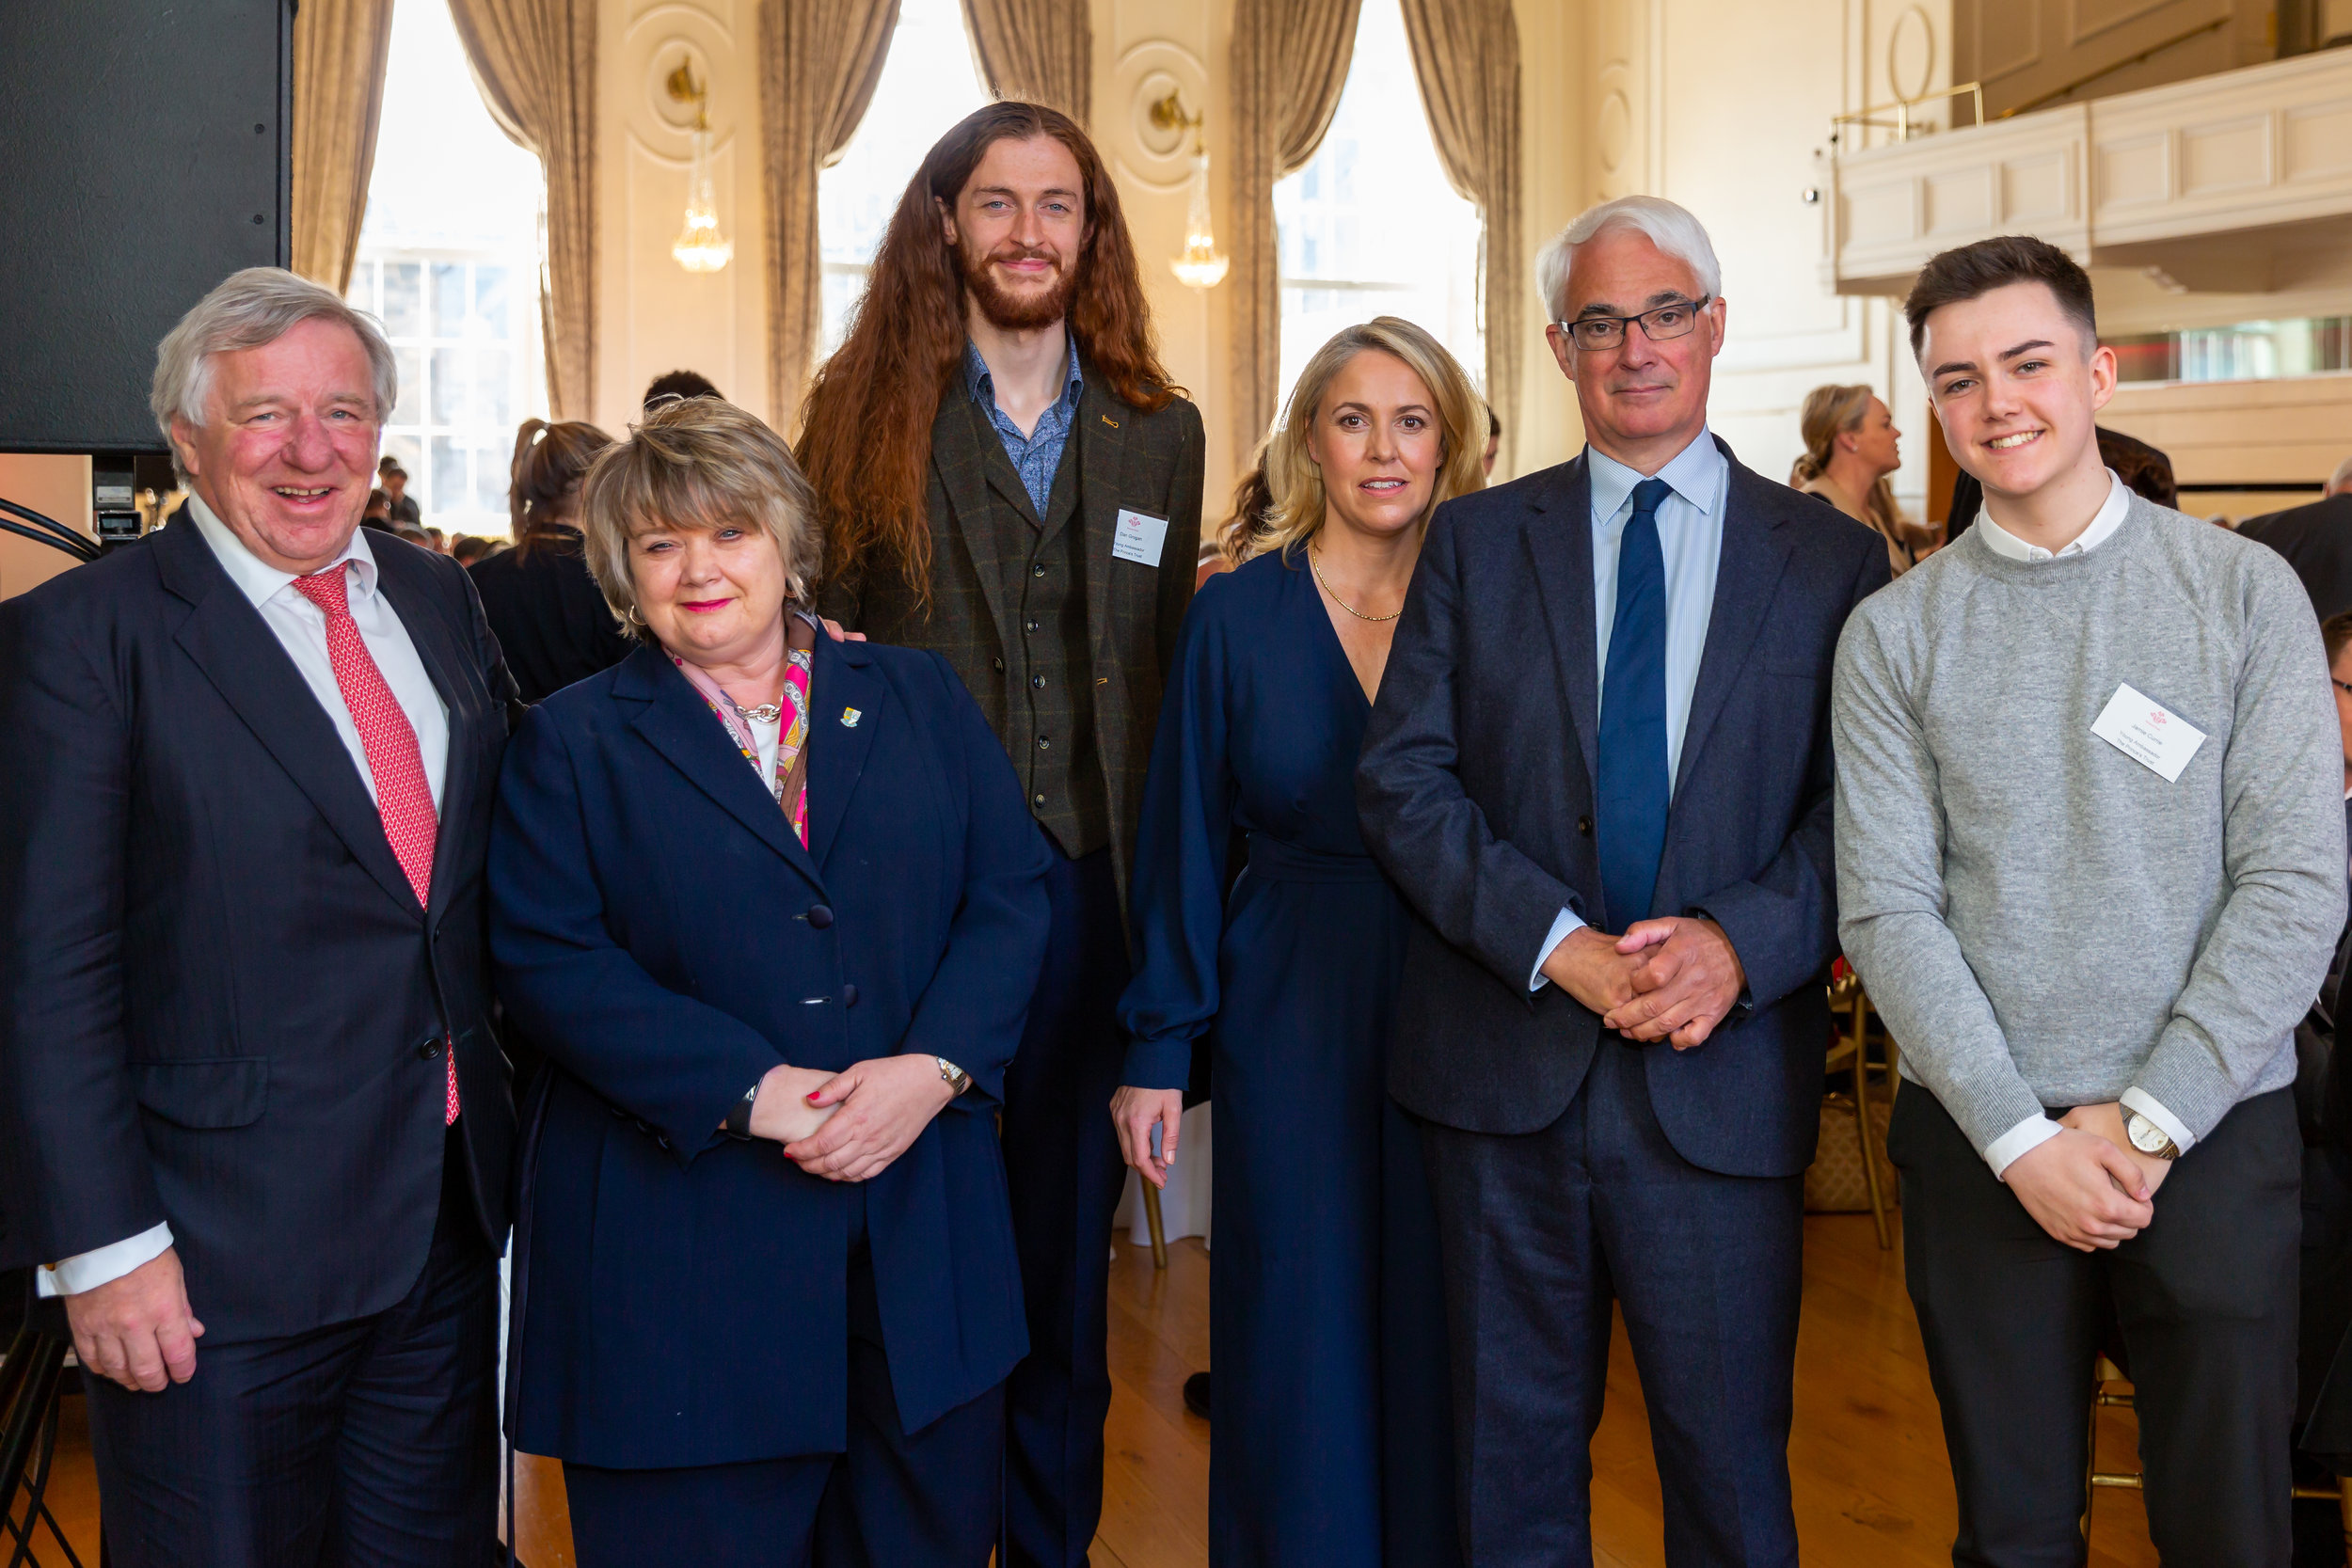 The Prince's Trust Scotland Business Lunch 2019-9.jpg